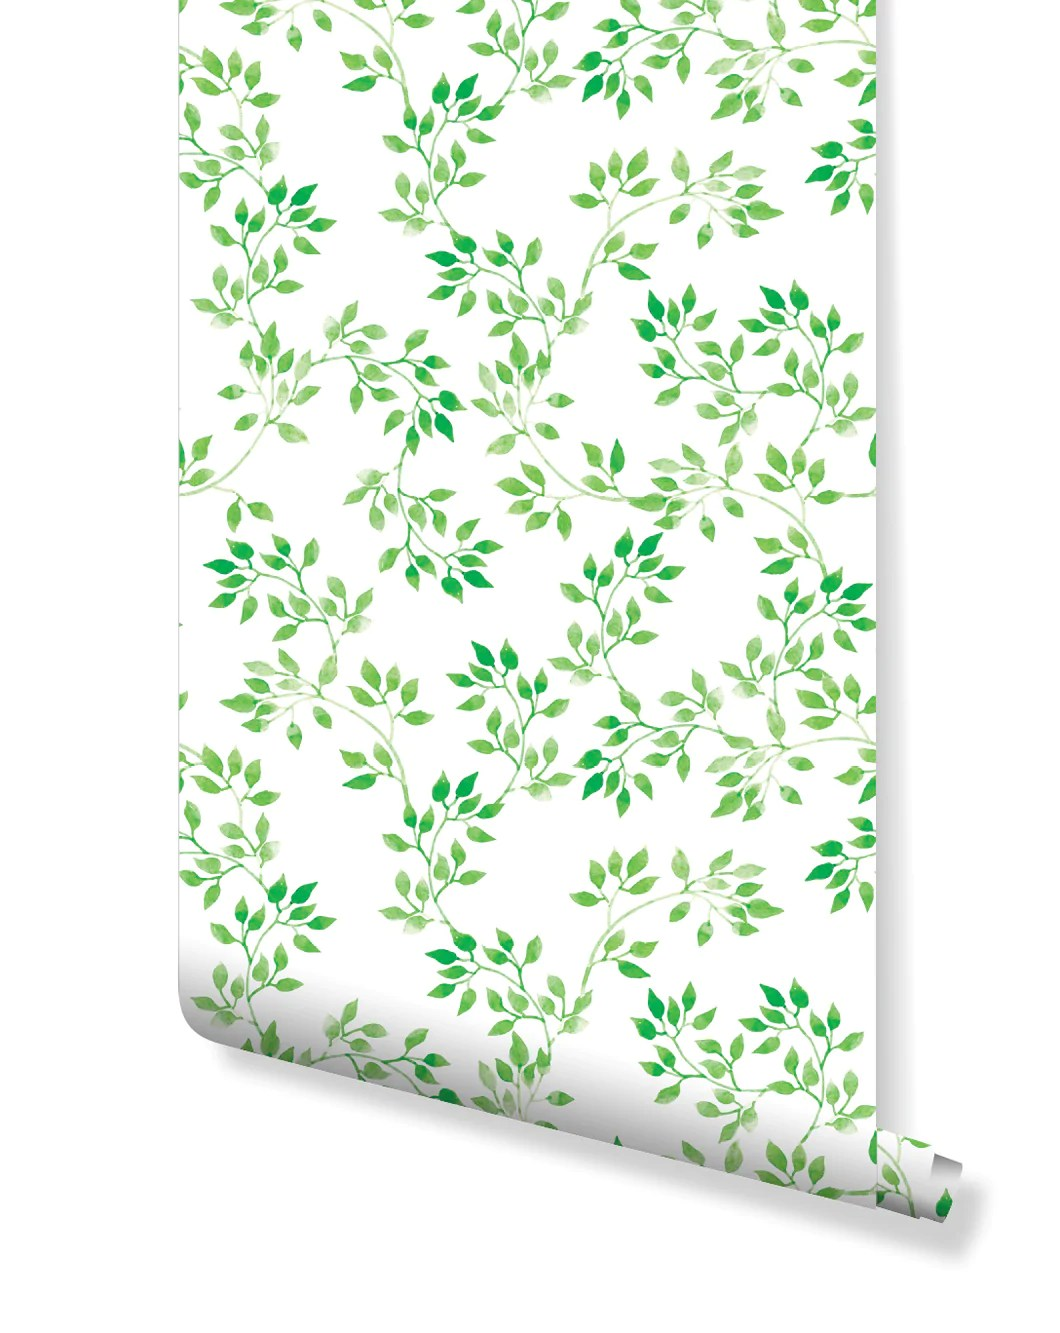 Self Adhesive Removable Wallpaper Watercolor Fresh Green Leaves Design Costacover